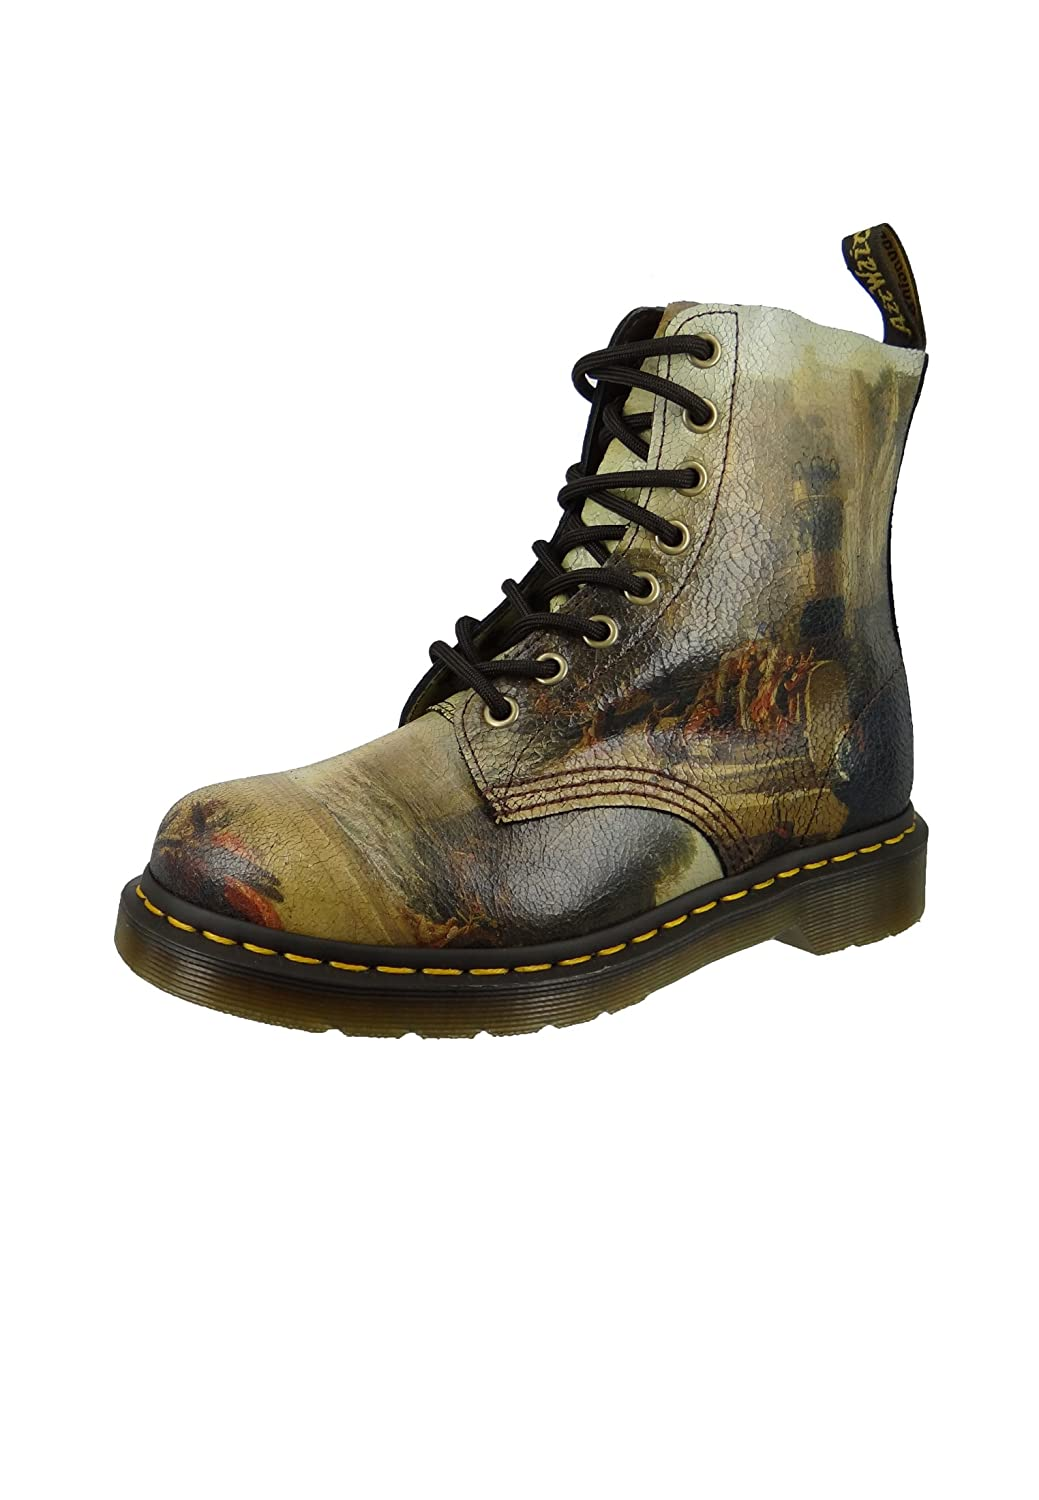 Dr. Martens Boot Unisex-Adult Pascal 8 Eye Boot Martens B079JXHHR4 8.5 M US Women / 7.5 M US Men|Multi 289596